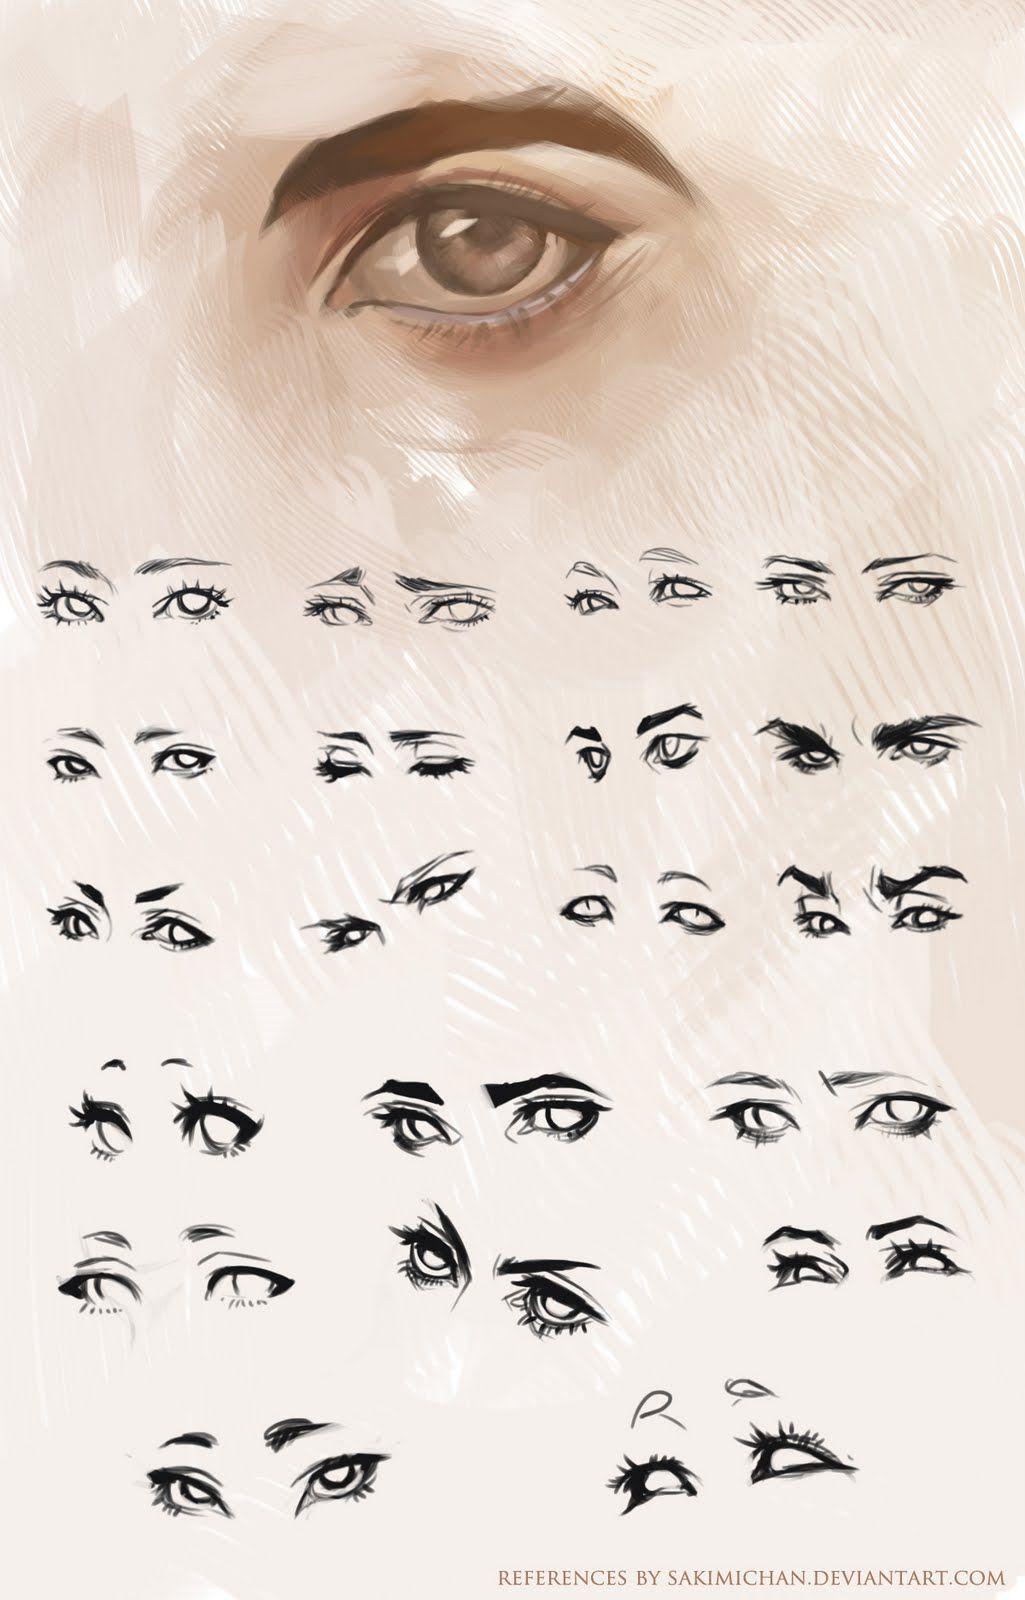 Different Eye Brushes: How To Draw Different Eye Expressions